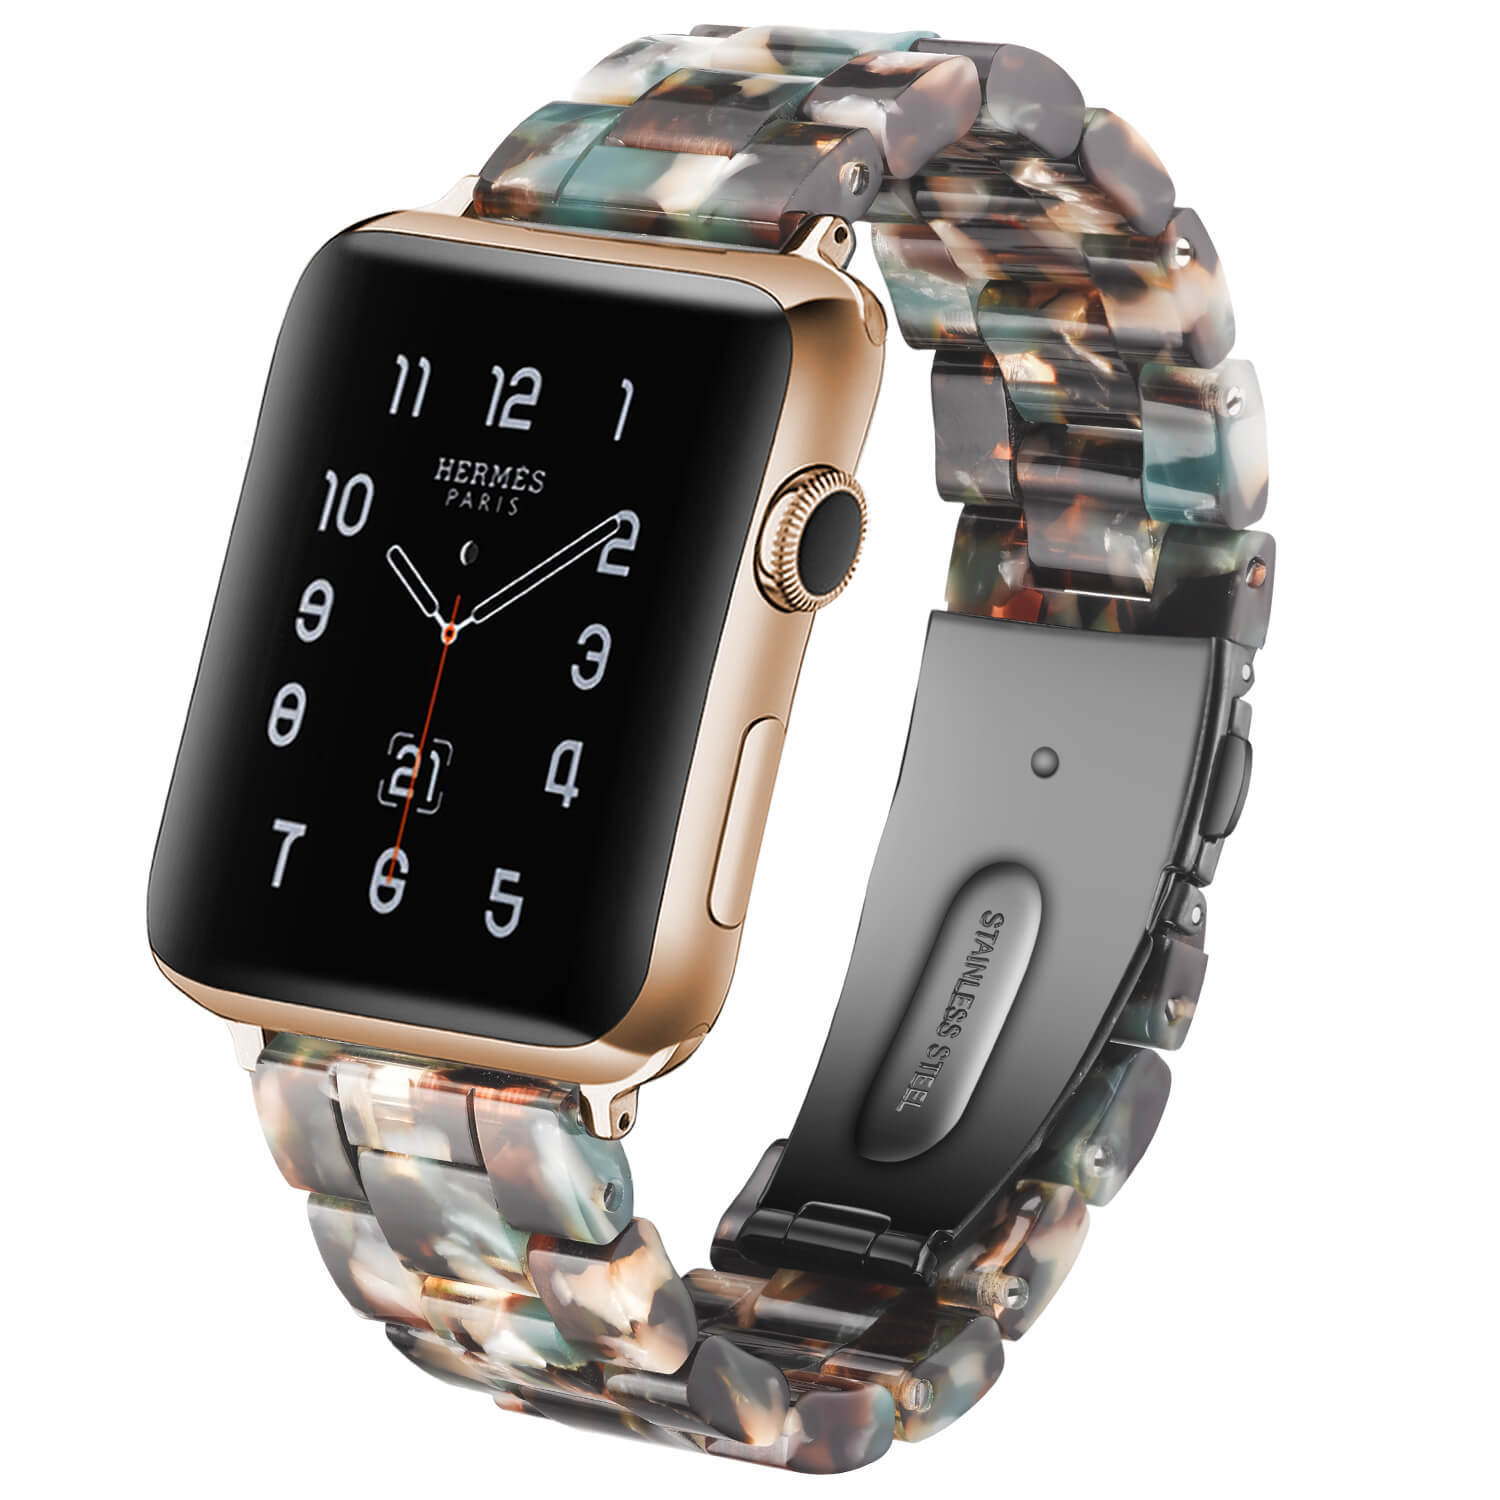 Apple Watch Resin Band Green Color Wholesale Supplier